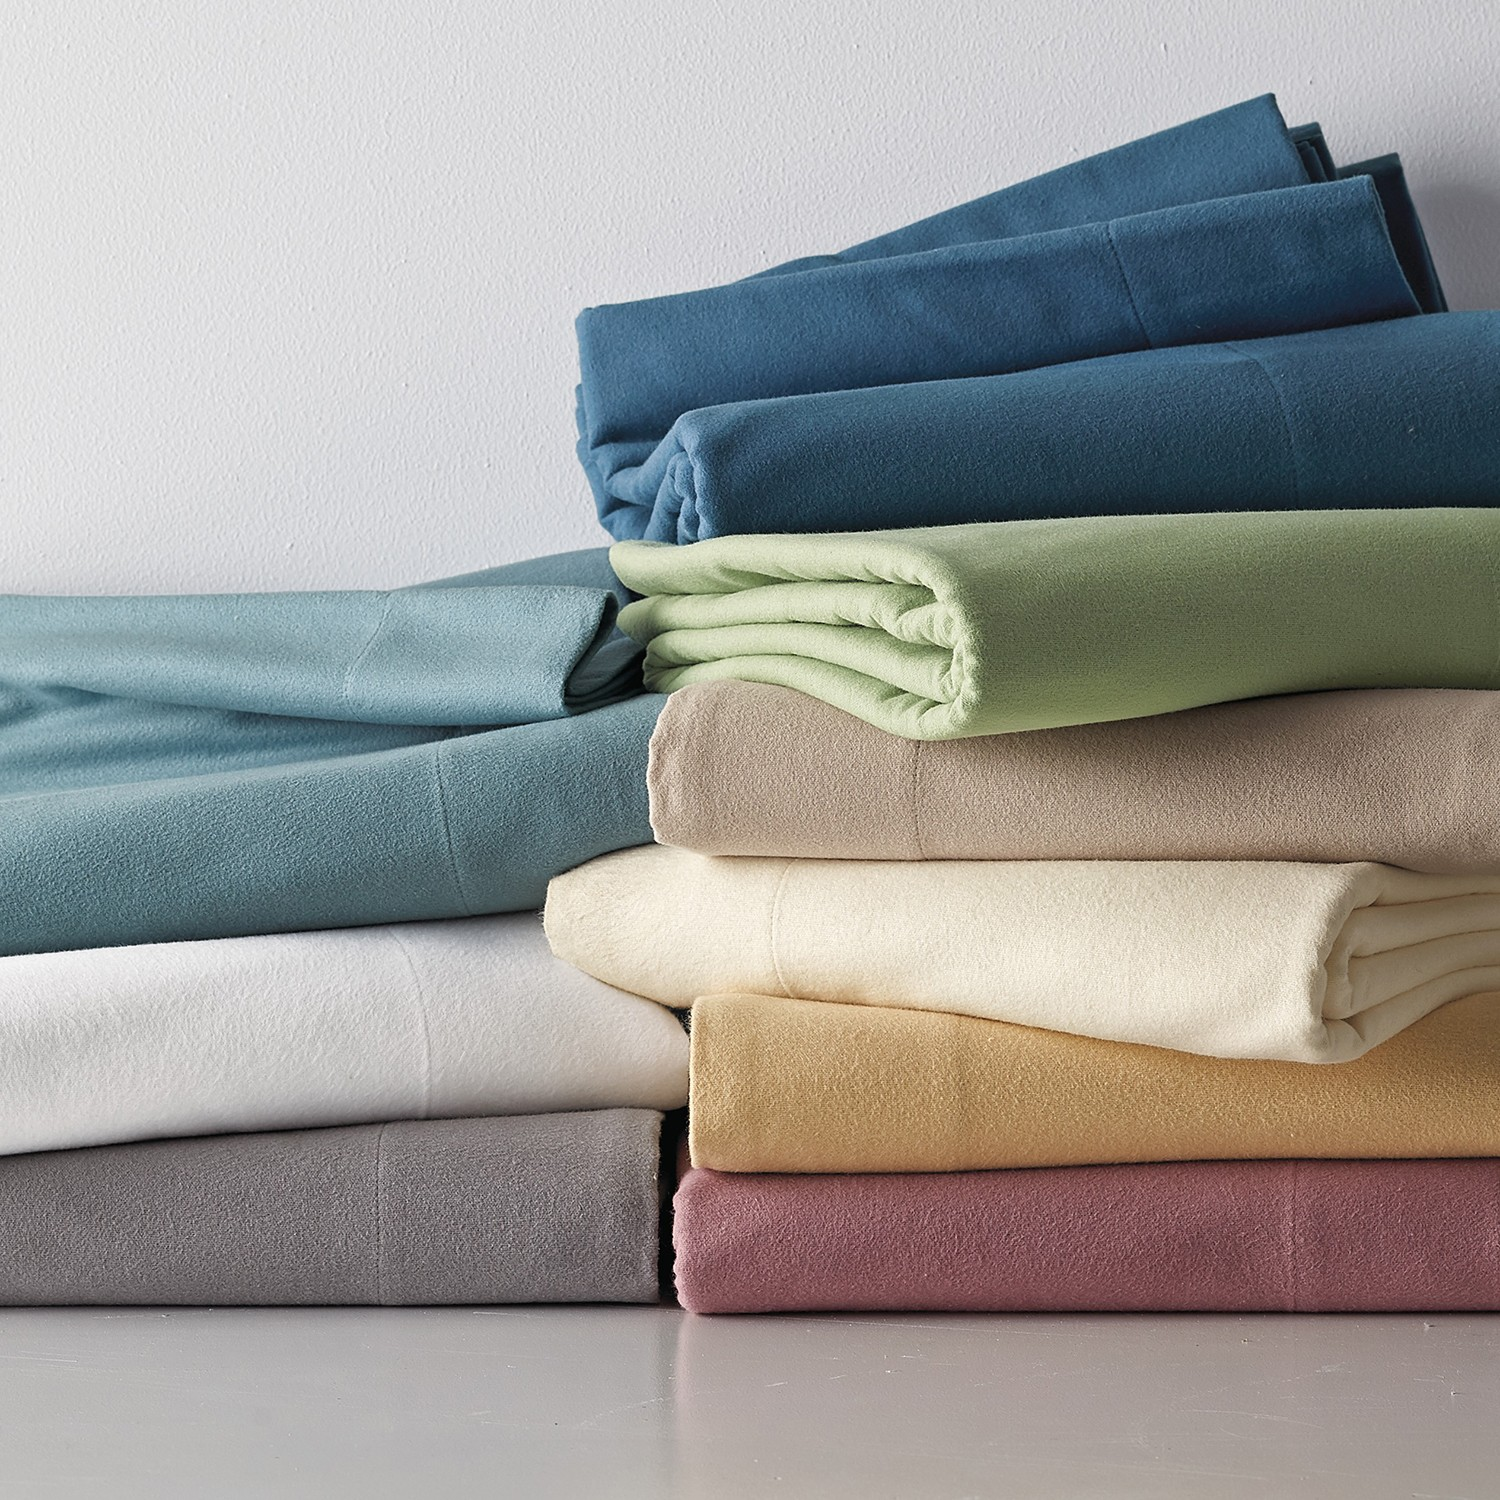 Bed sheets: a Curbed guide